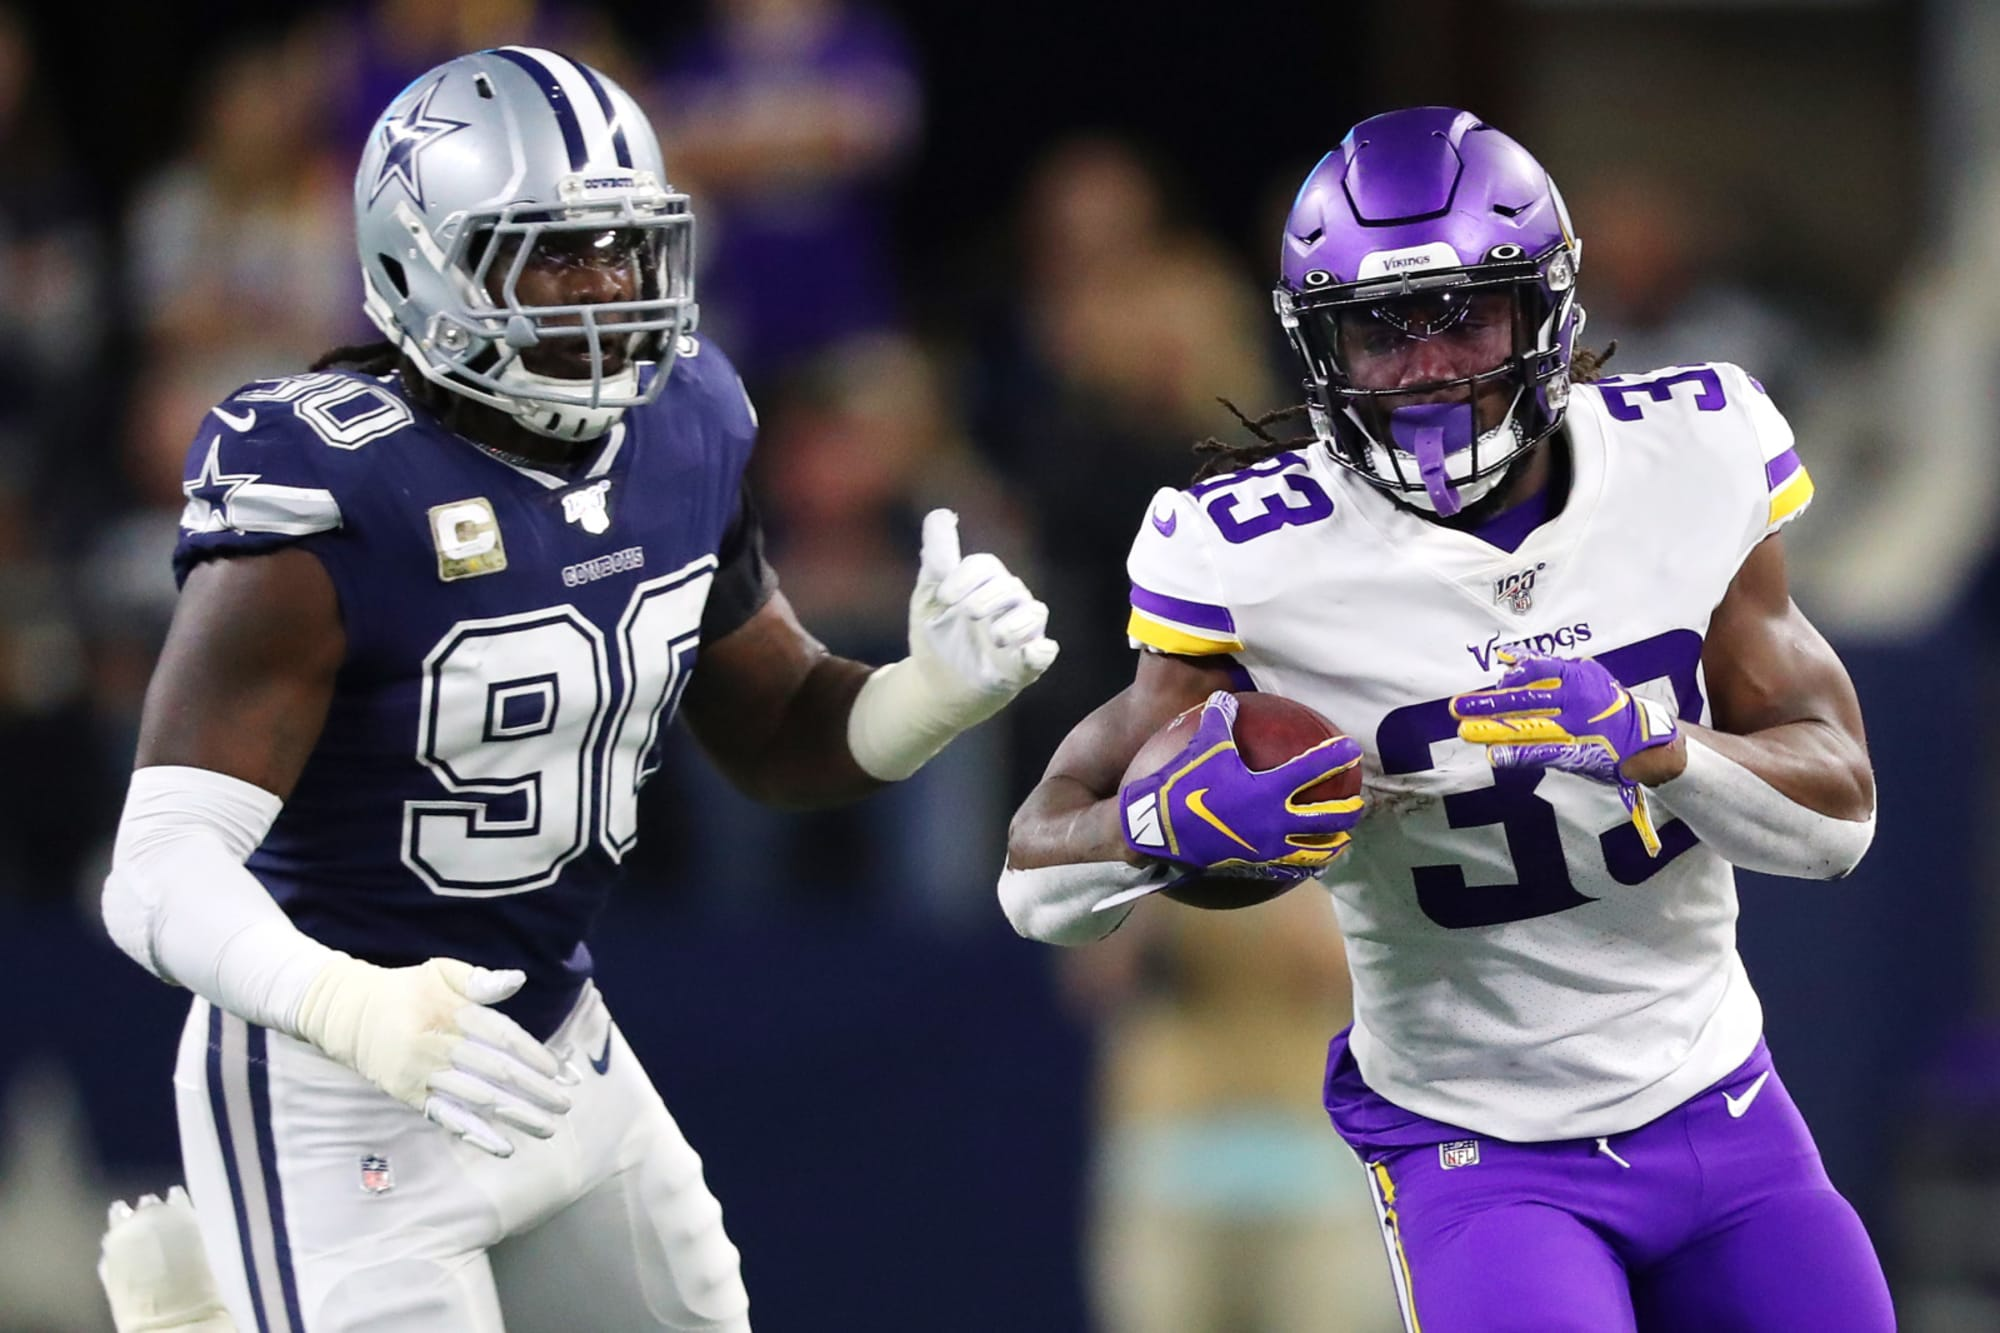 What did Dalvin Cook do better than any NFL running back in 2019?